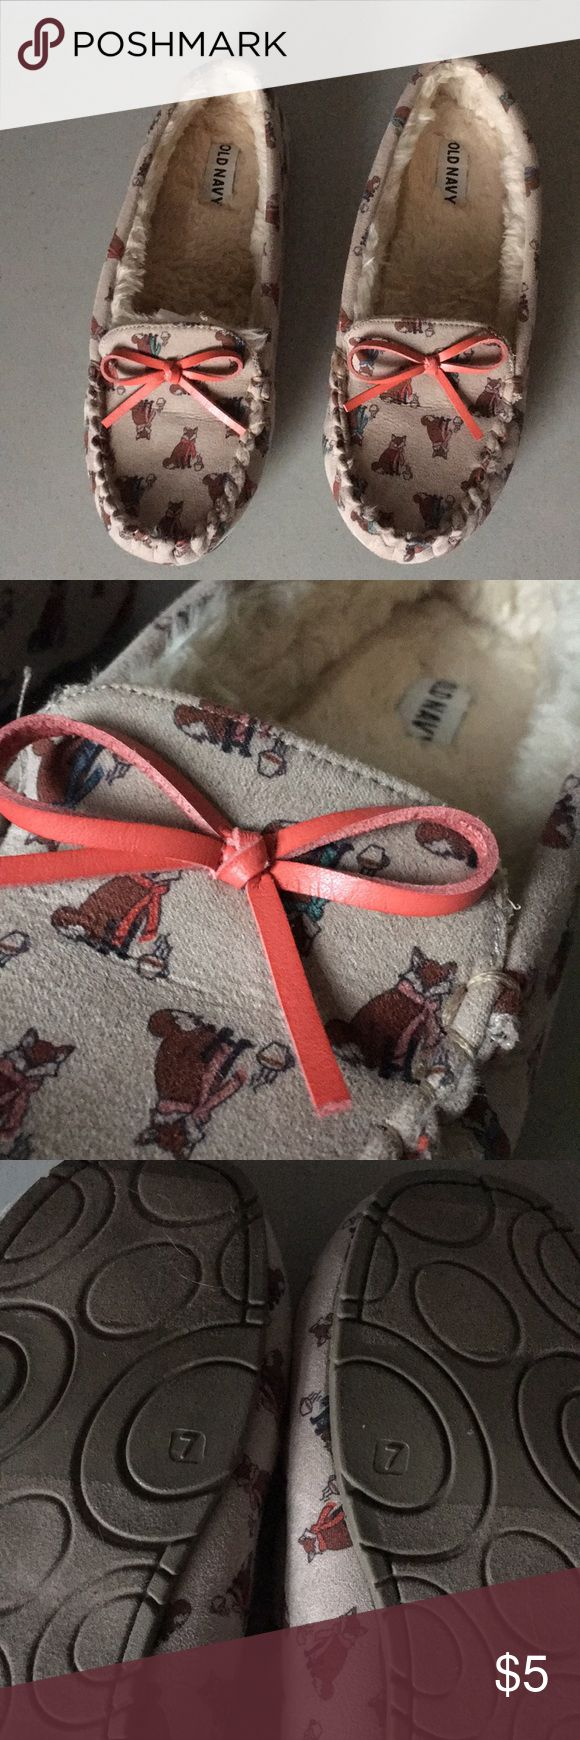 Old Navy slippers - Fox print New, never used.  Size 7 Old Navy Shoes Slippers